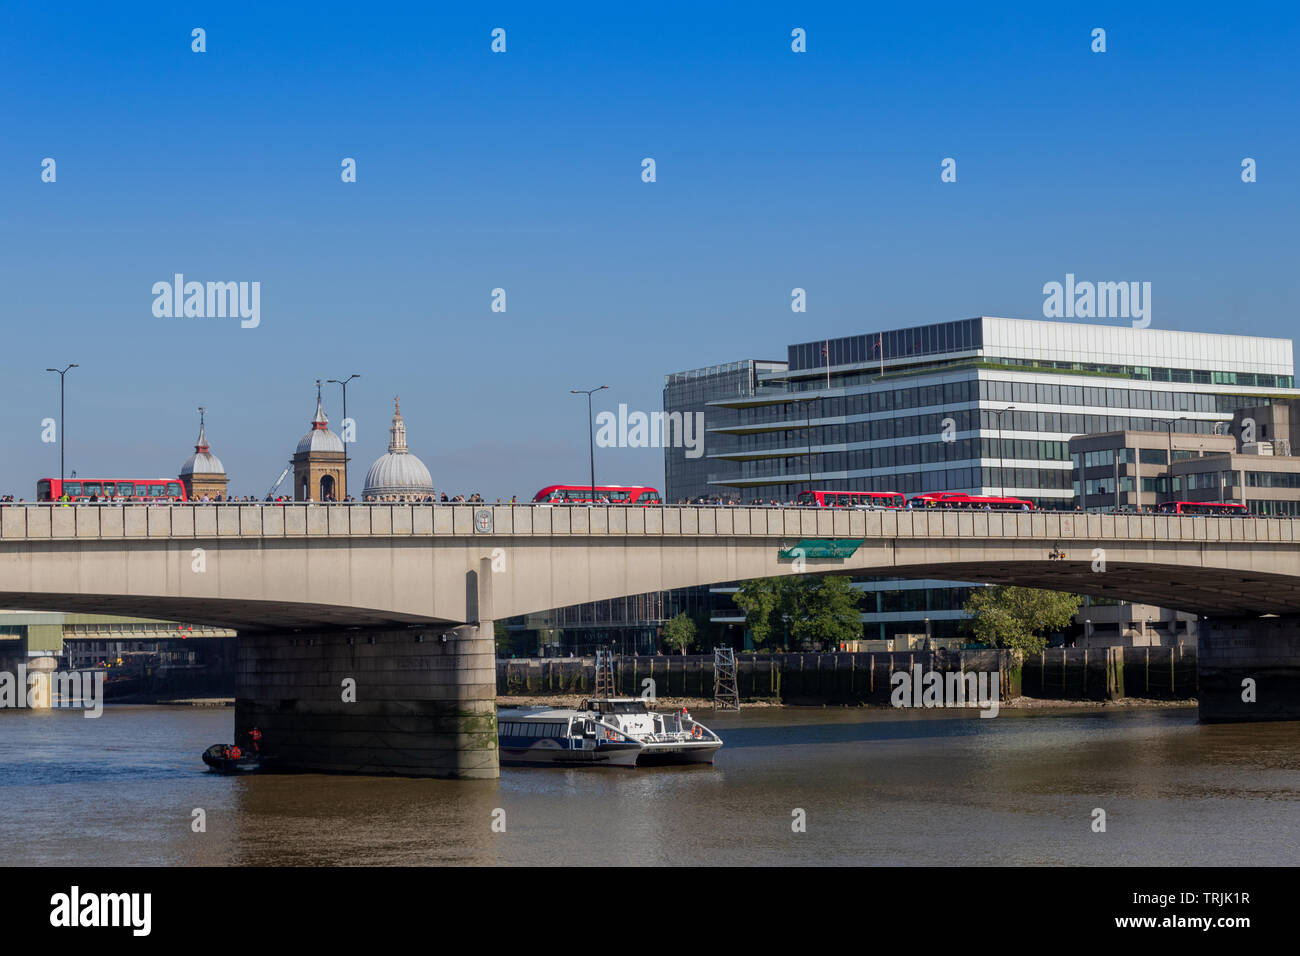 Morning commute on London Bridge - Stock Image